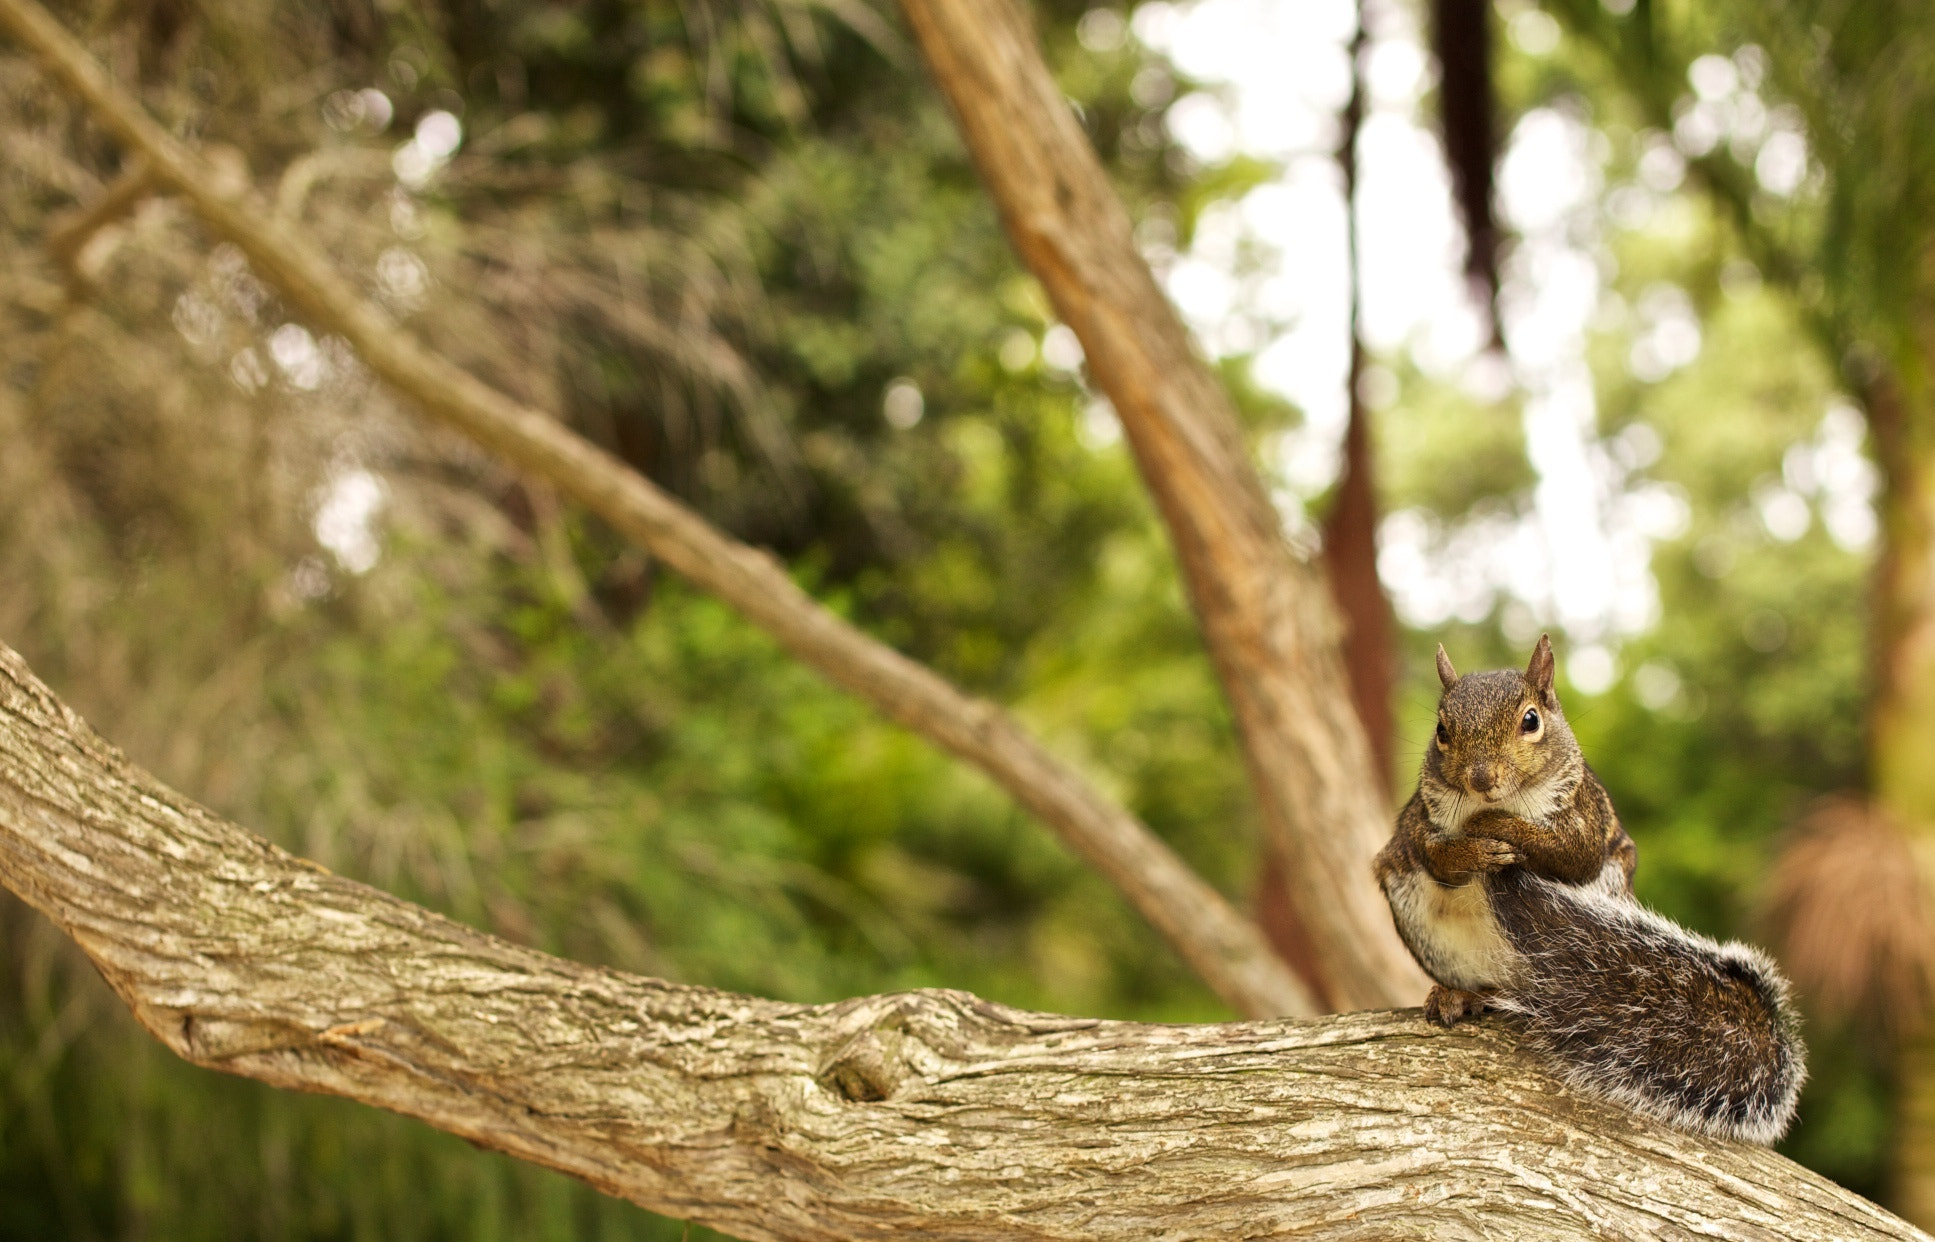 Photograph Cheeky Squirrel by Sean Cheng on 500px